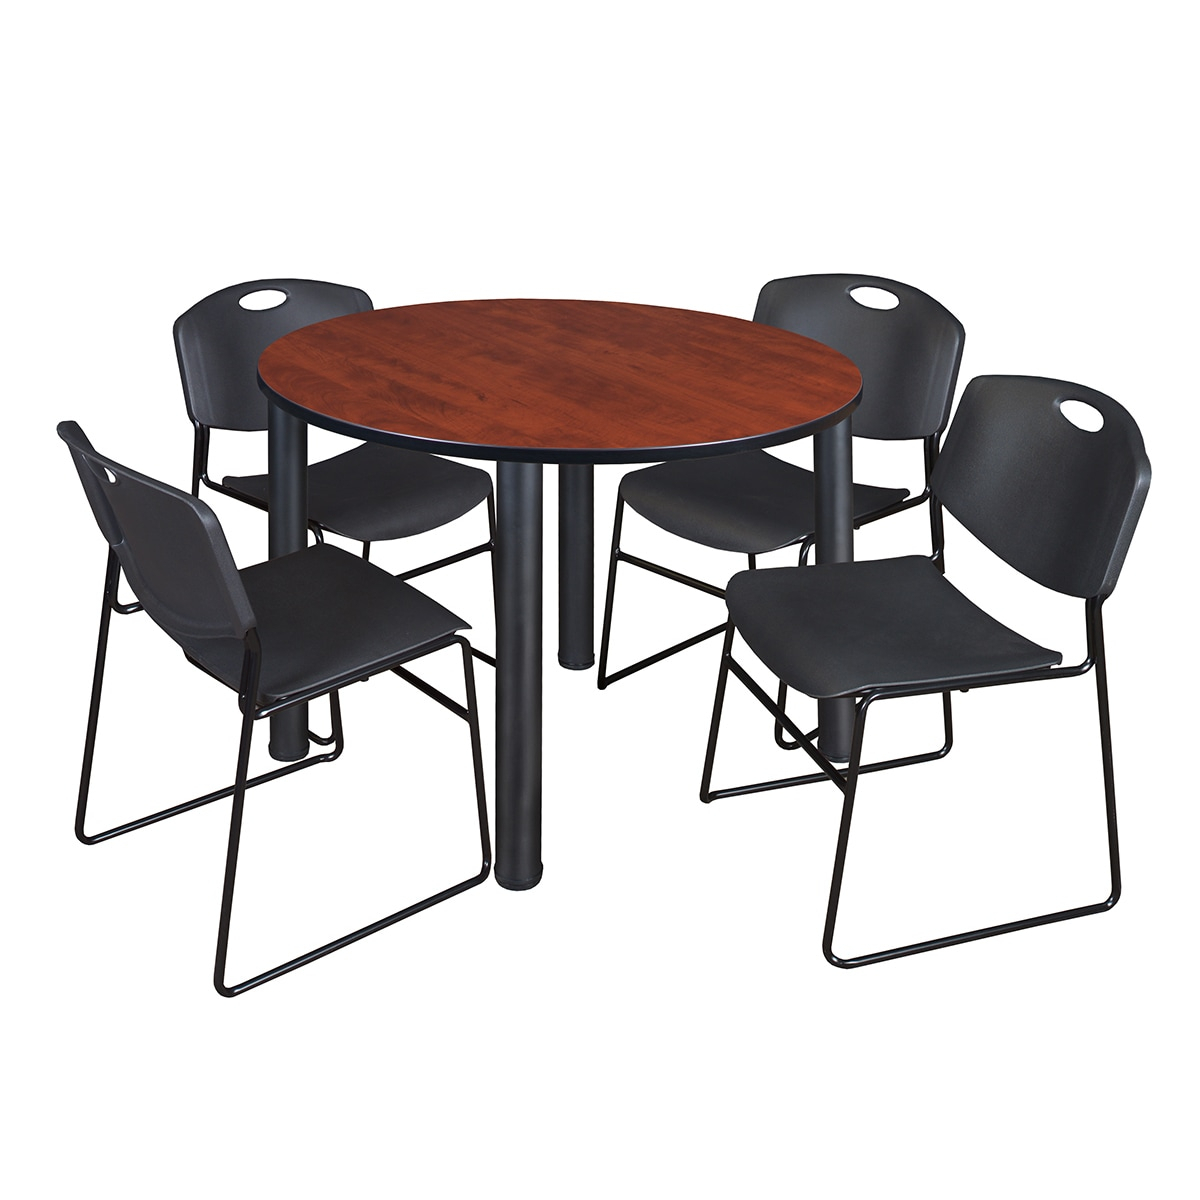 """Kee 48"""" Round Breakroom Table Black & 4 Zeng Stack Chairs Regarding Current Round Breakroom Tables And Chair Set (View 14 of 15)"""